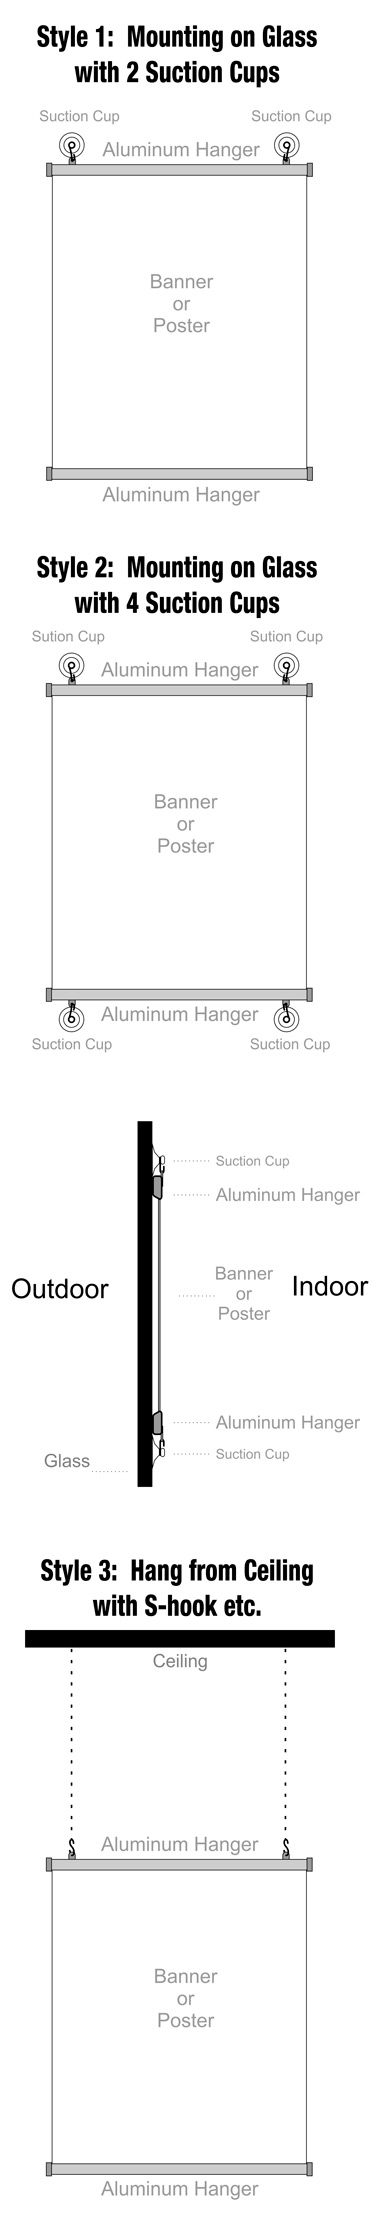 How to Hang Aluminum Hanger